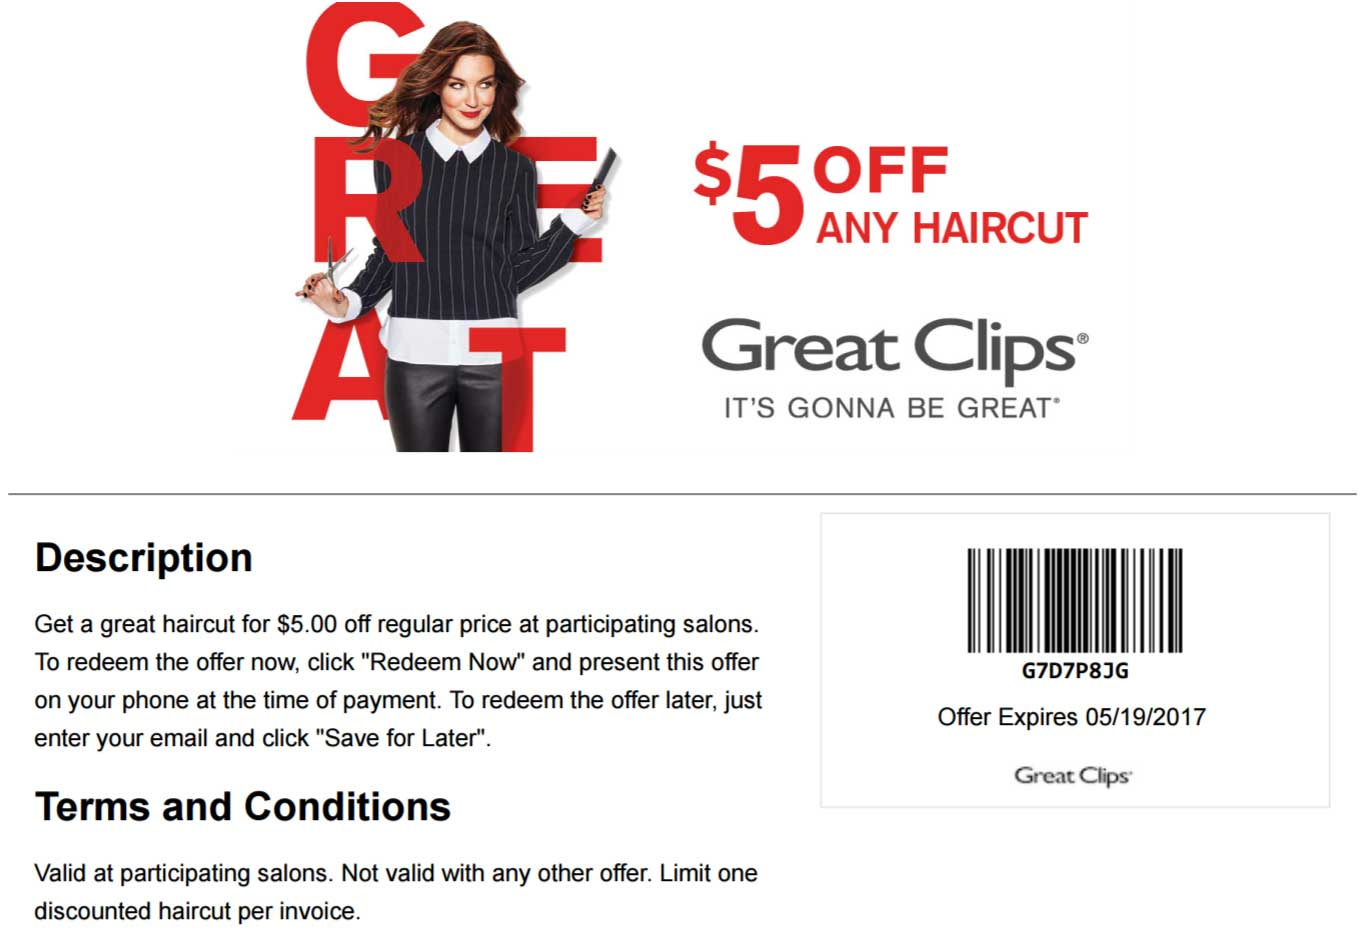 How to use a Great Clips coupon